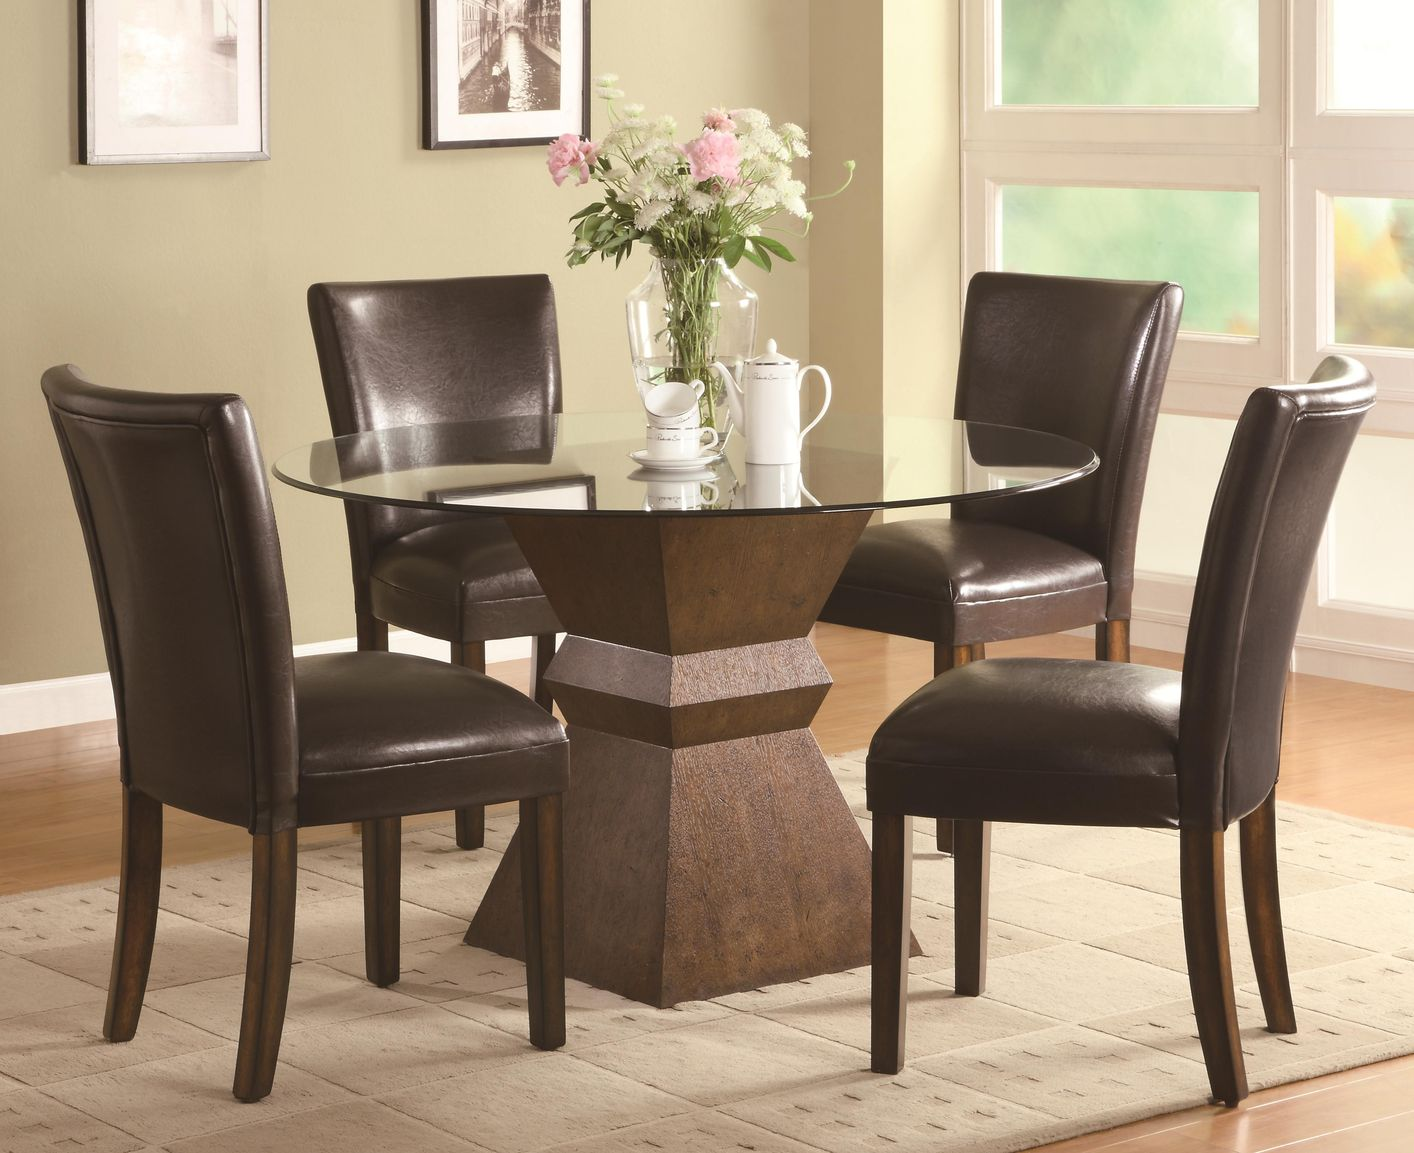 102800 103053 brown wood and glass dining table set in los angeles ca